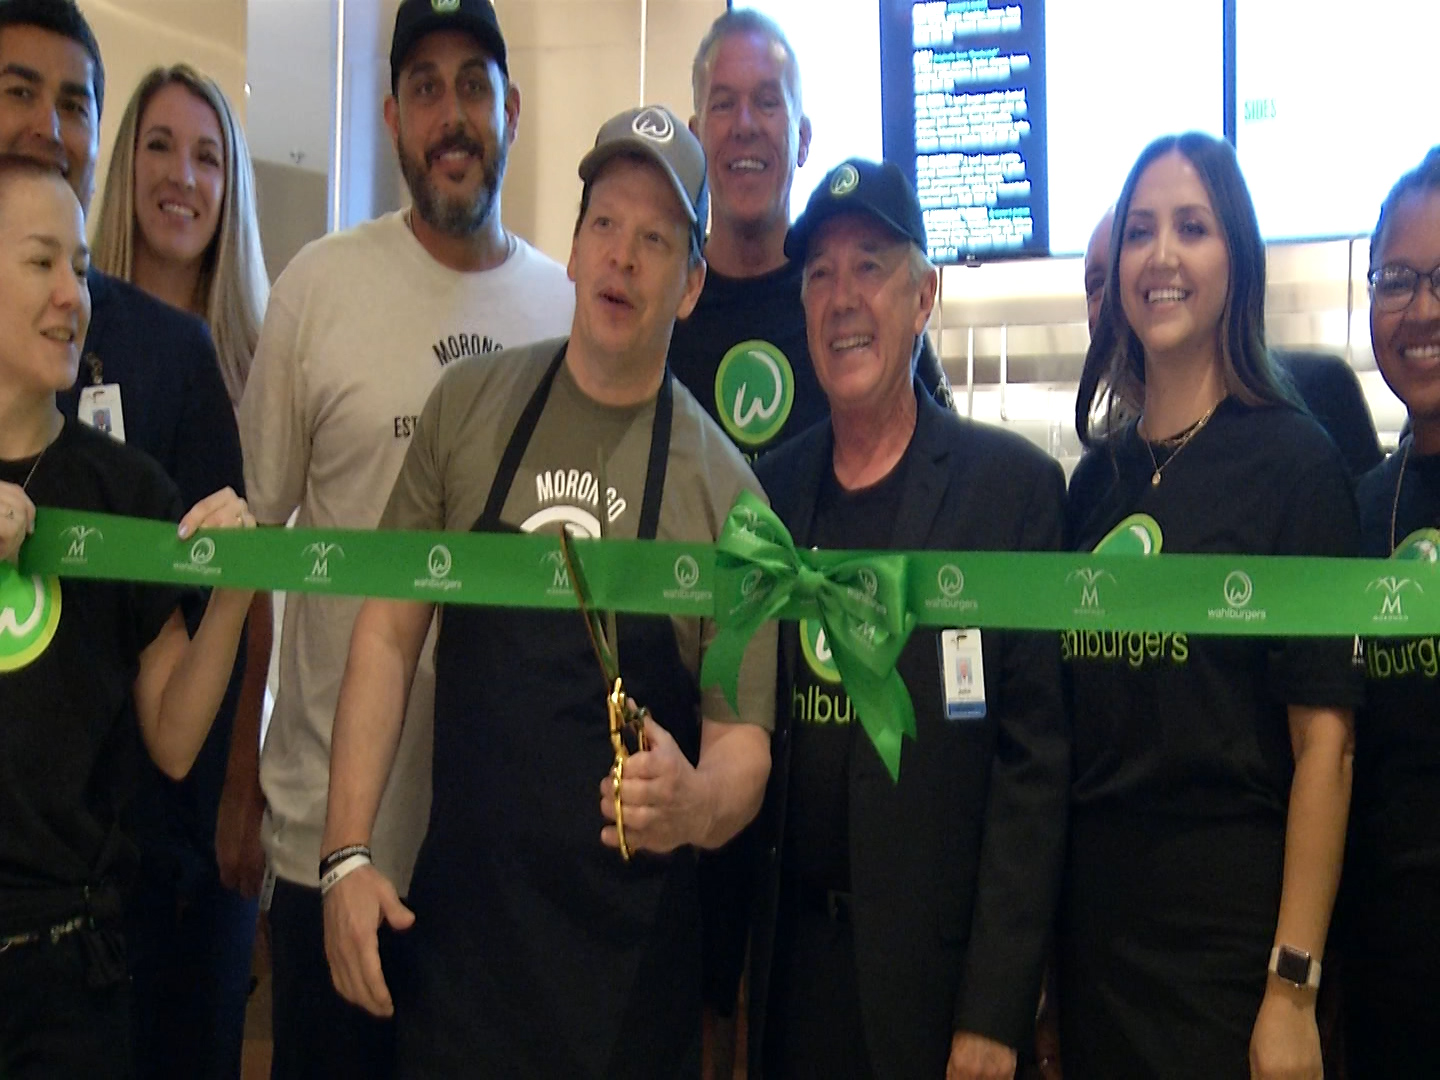 Newest Wahlburgers Location Now Open